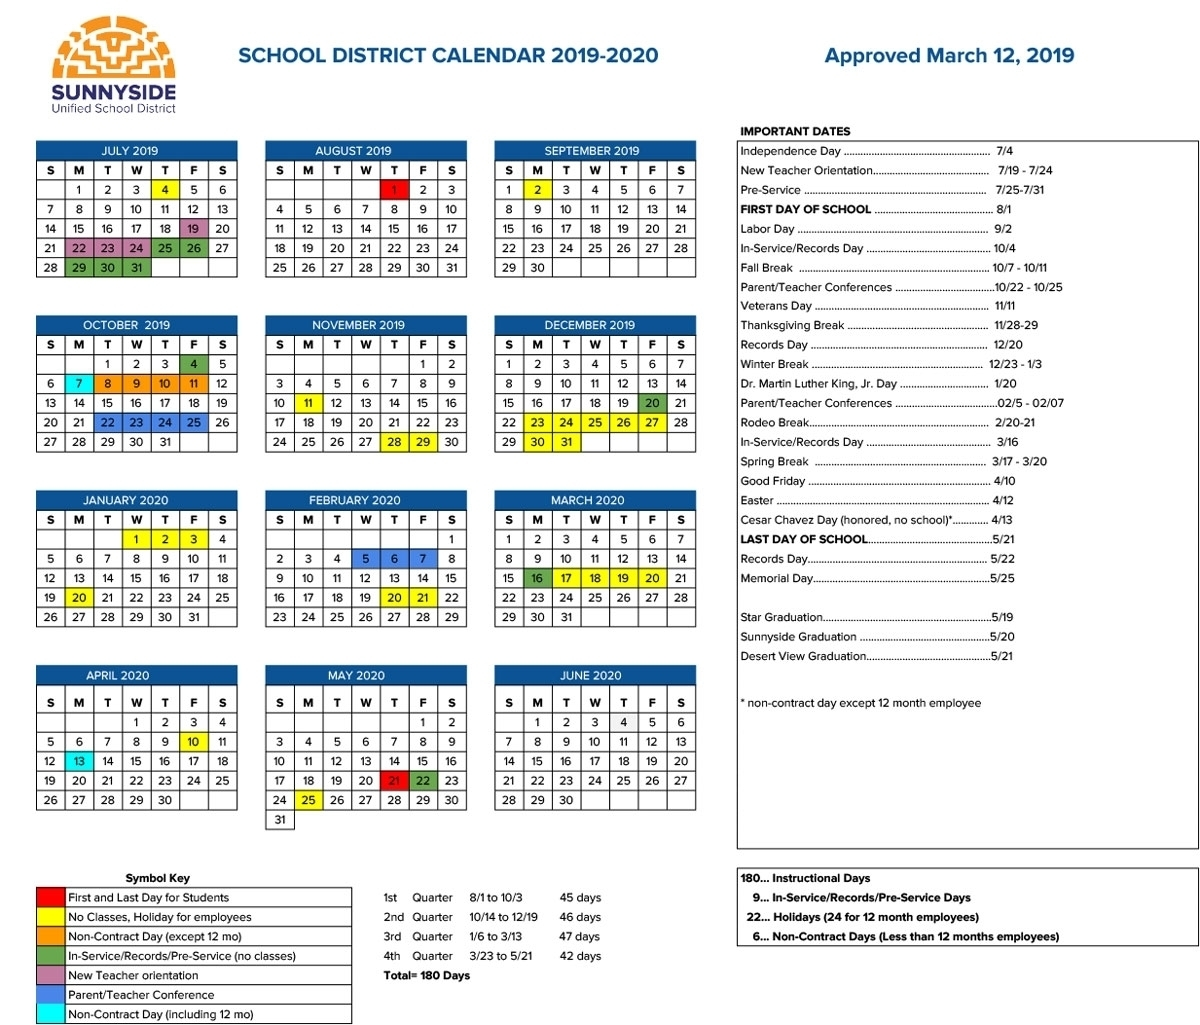 Special Days In The School Year 2019-2020 - Calendar with Special Days Calendat 2019 For Schools